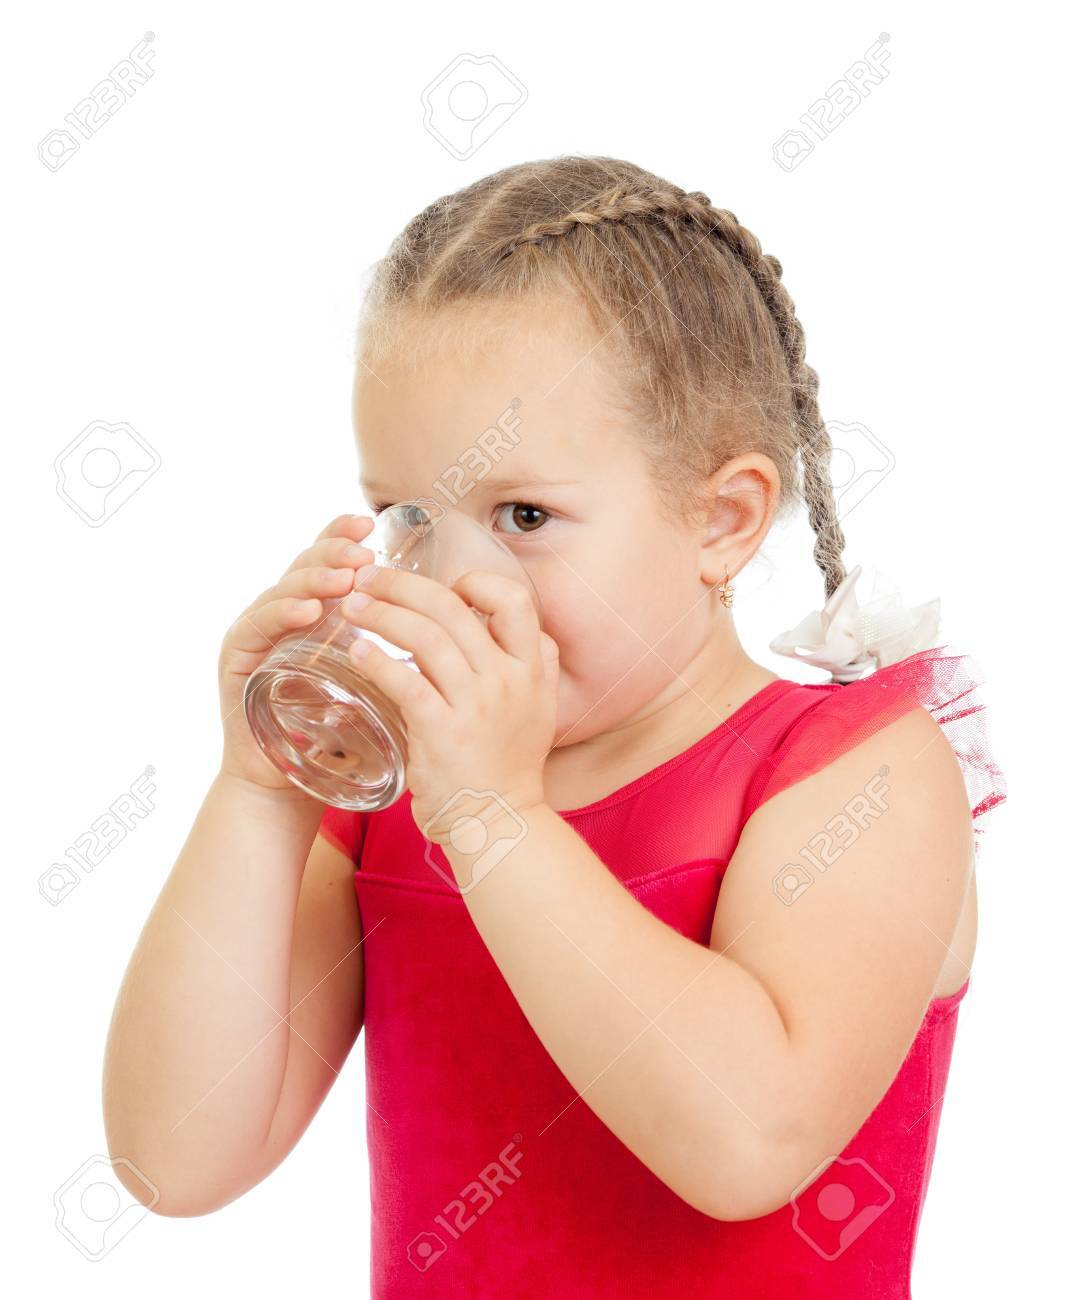 little girl drinking water from glass over white background Stock Photo - 15644951